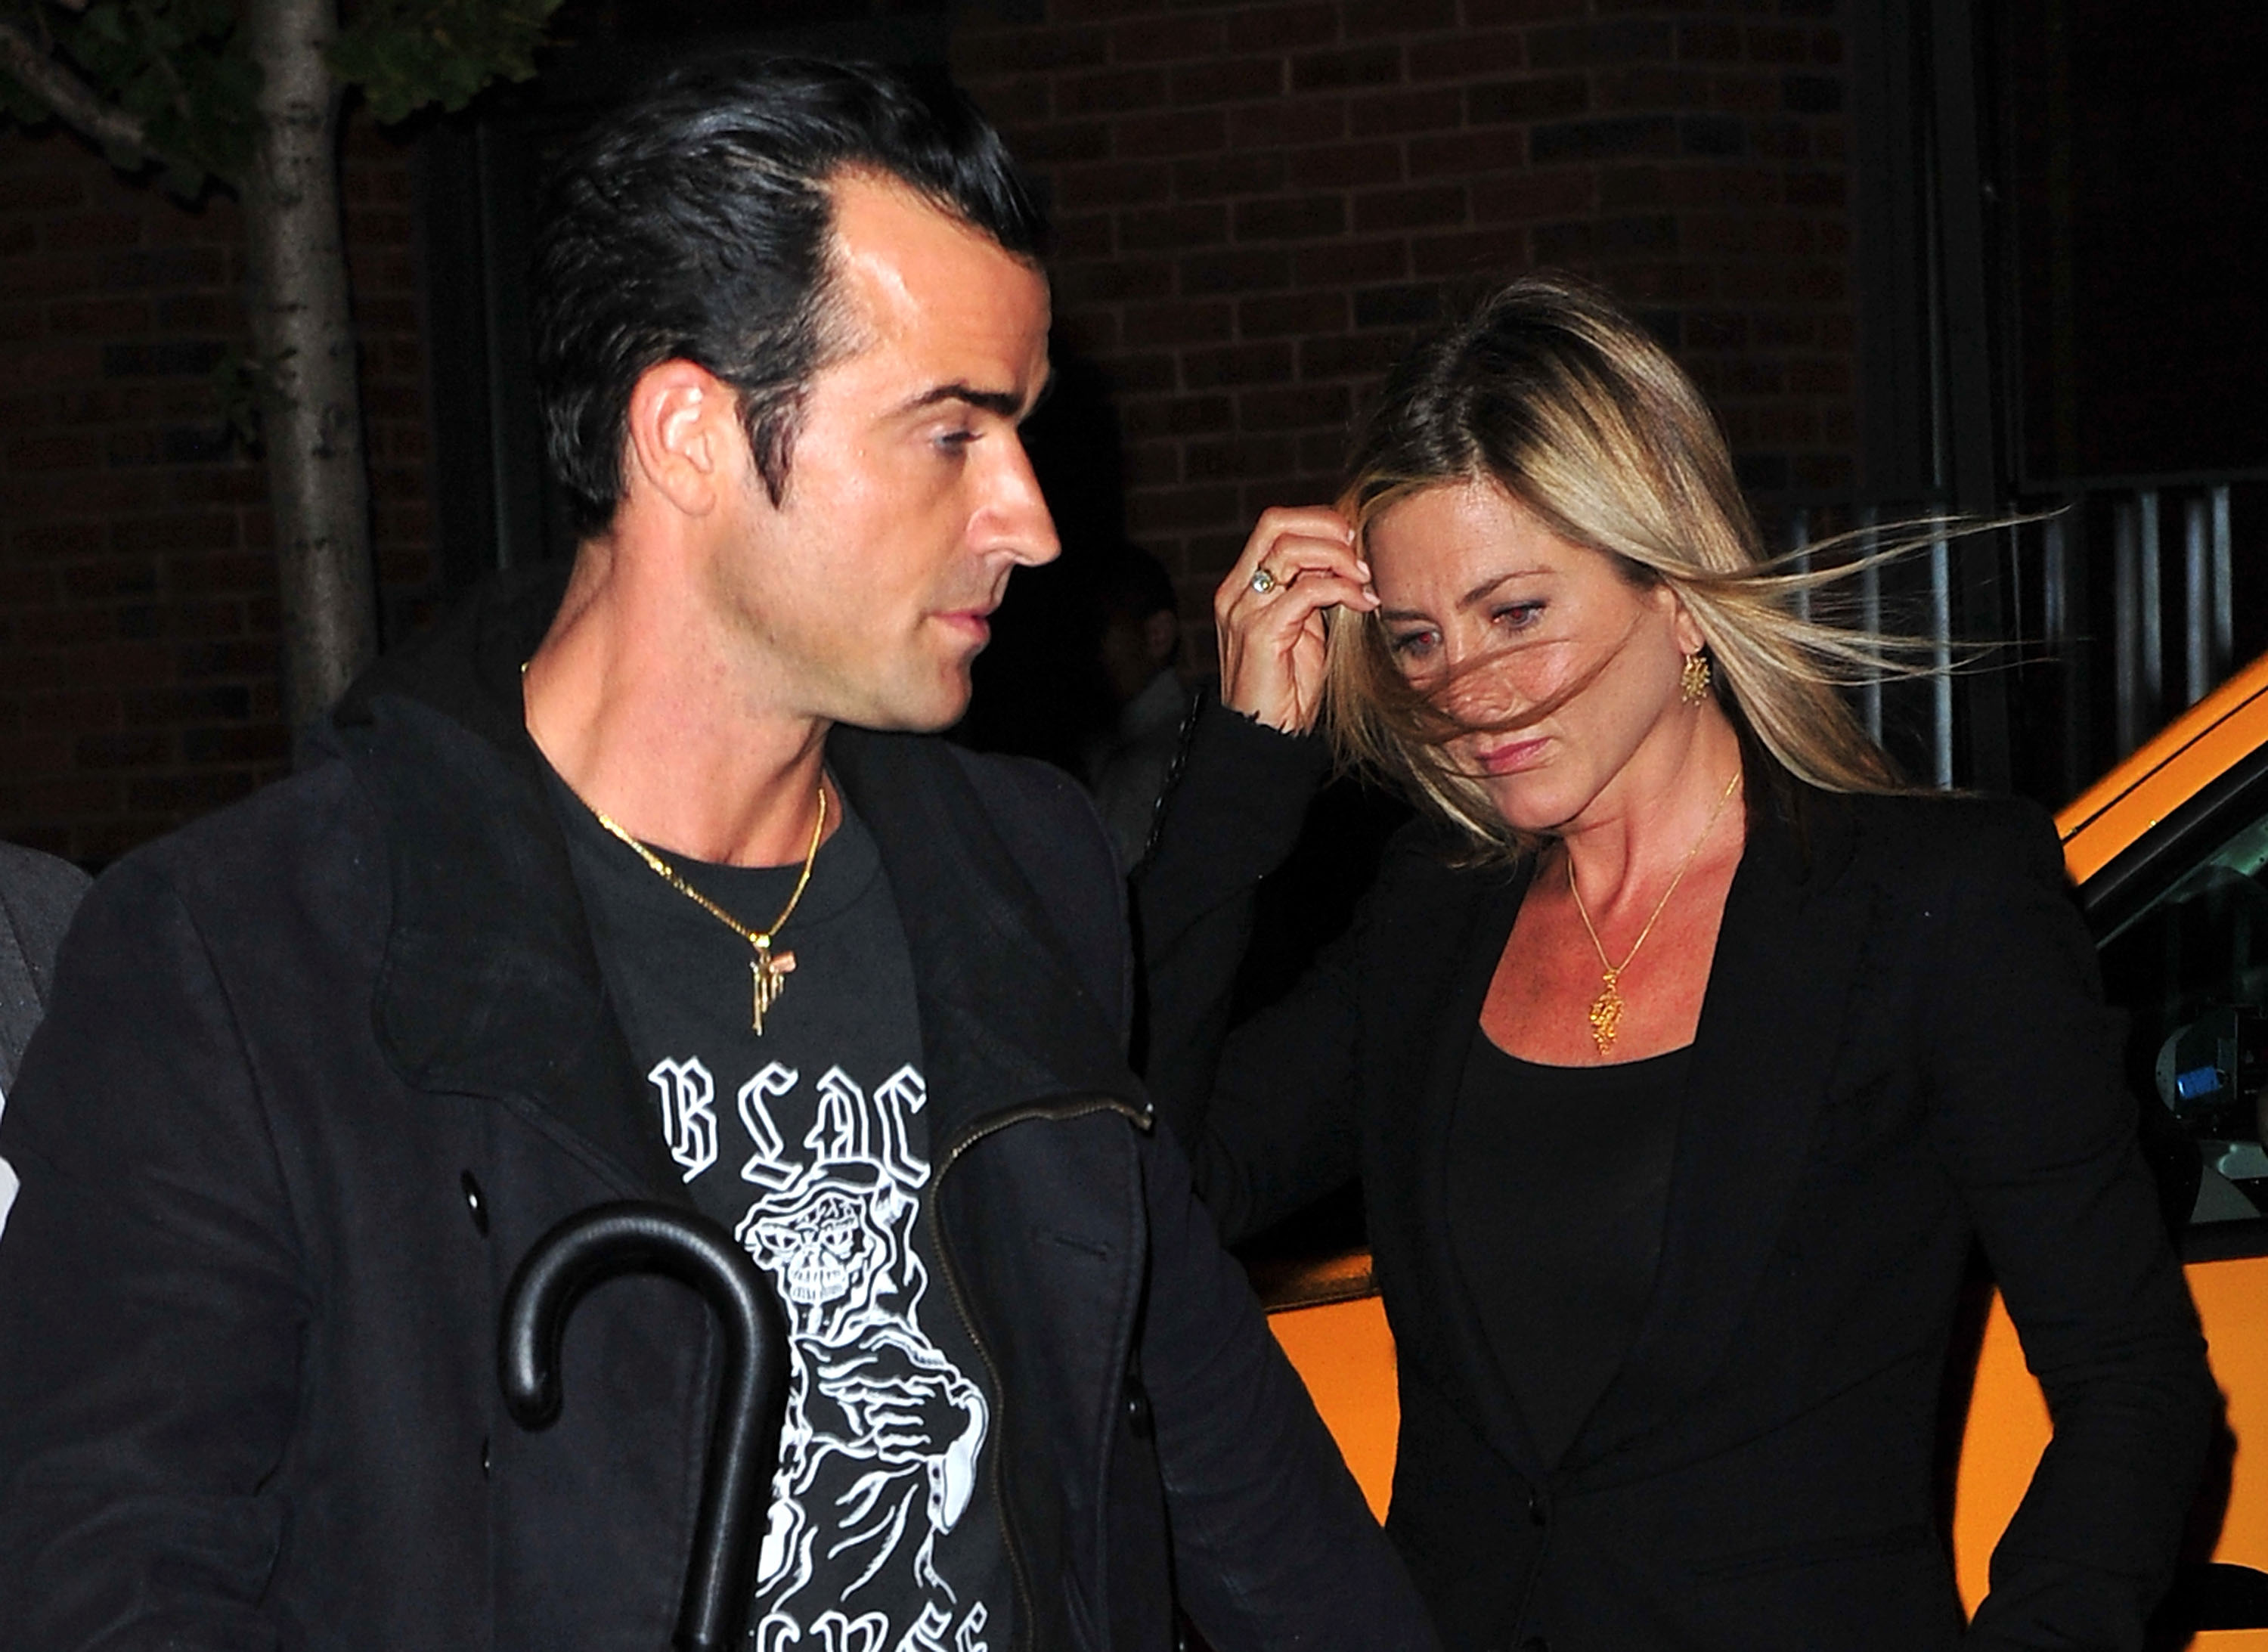 Celebrity Sightings In New York City - September 15, 2011. Jennifer Aniston and Justin Theroux.